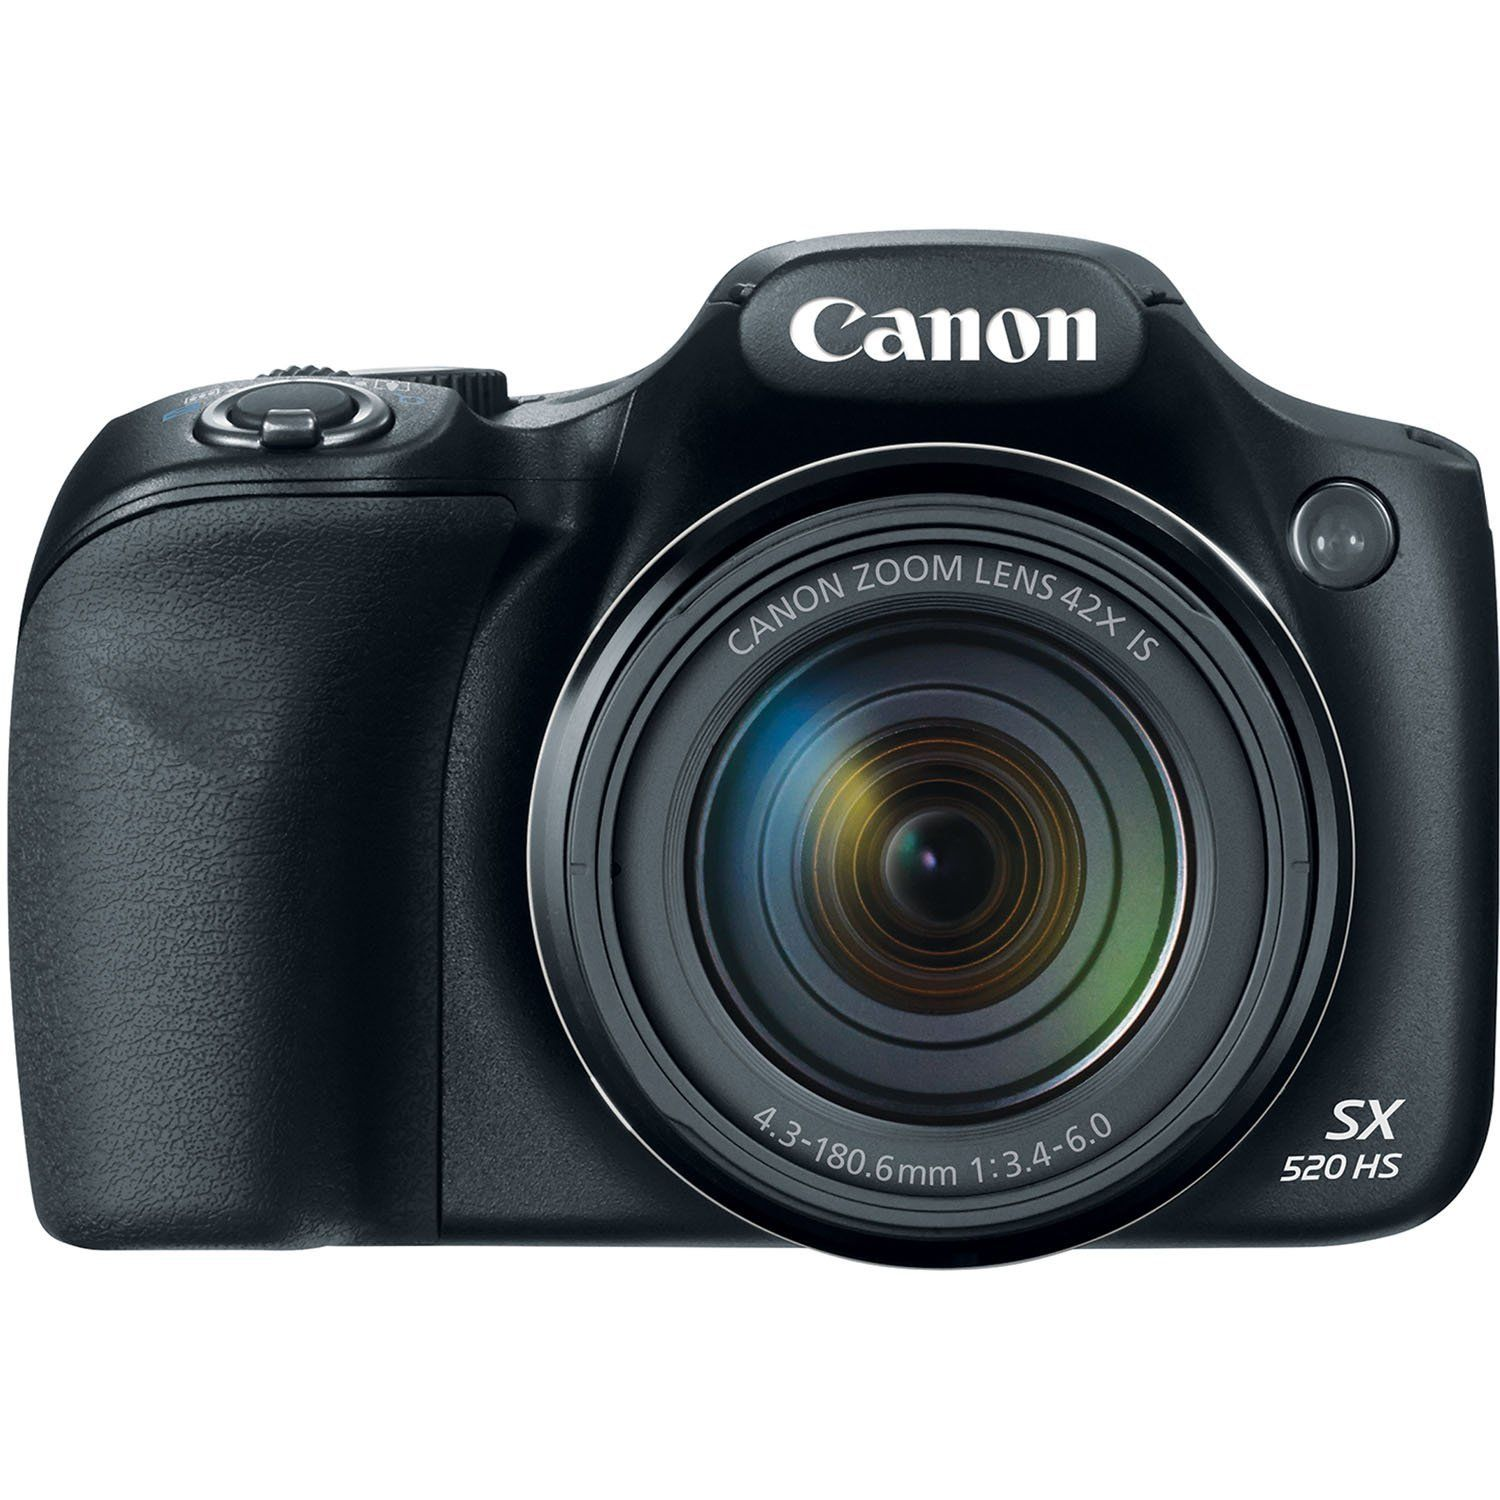 Canon Powershot Sx520 16digital Camera With 42x Optical Image Stabilized Zoom With 3 Inch Lcd Black Canon Powershot Canon Digital Camera Hd Digital Camera